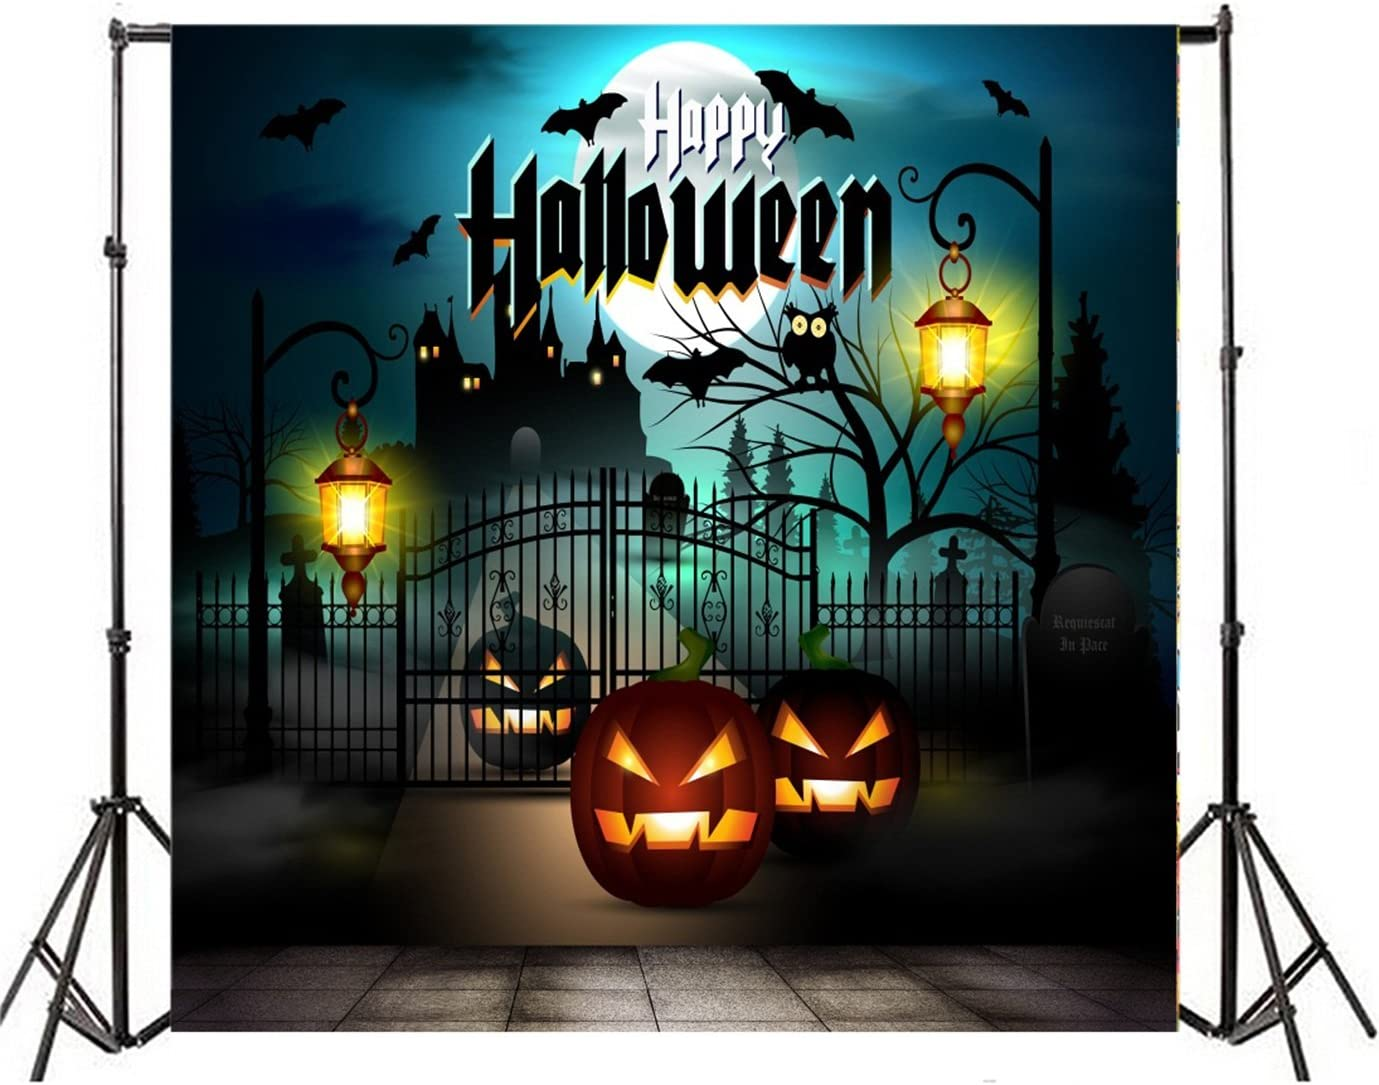 LTLYH 8x8ft Happy Halloween Backdrop Night Sky and Moon Pumpkin Lantern Scary Castle Photography Background Children Party Decorations Banner Photo Studio A018